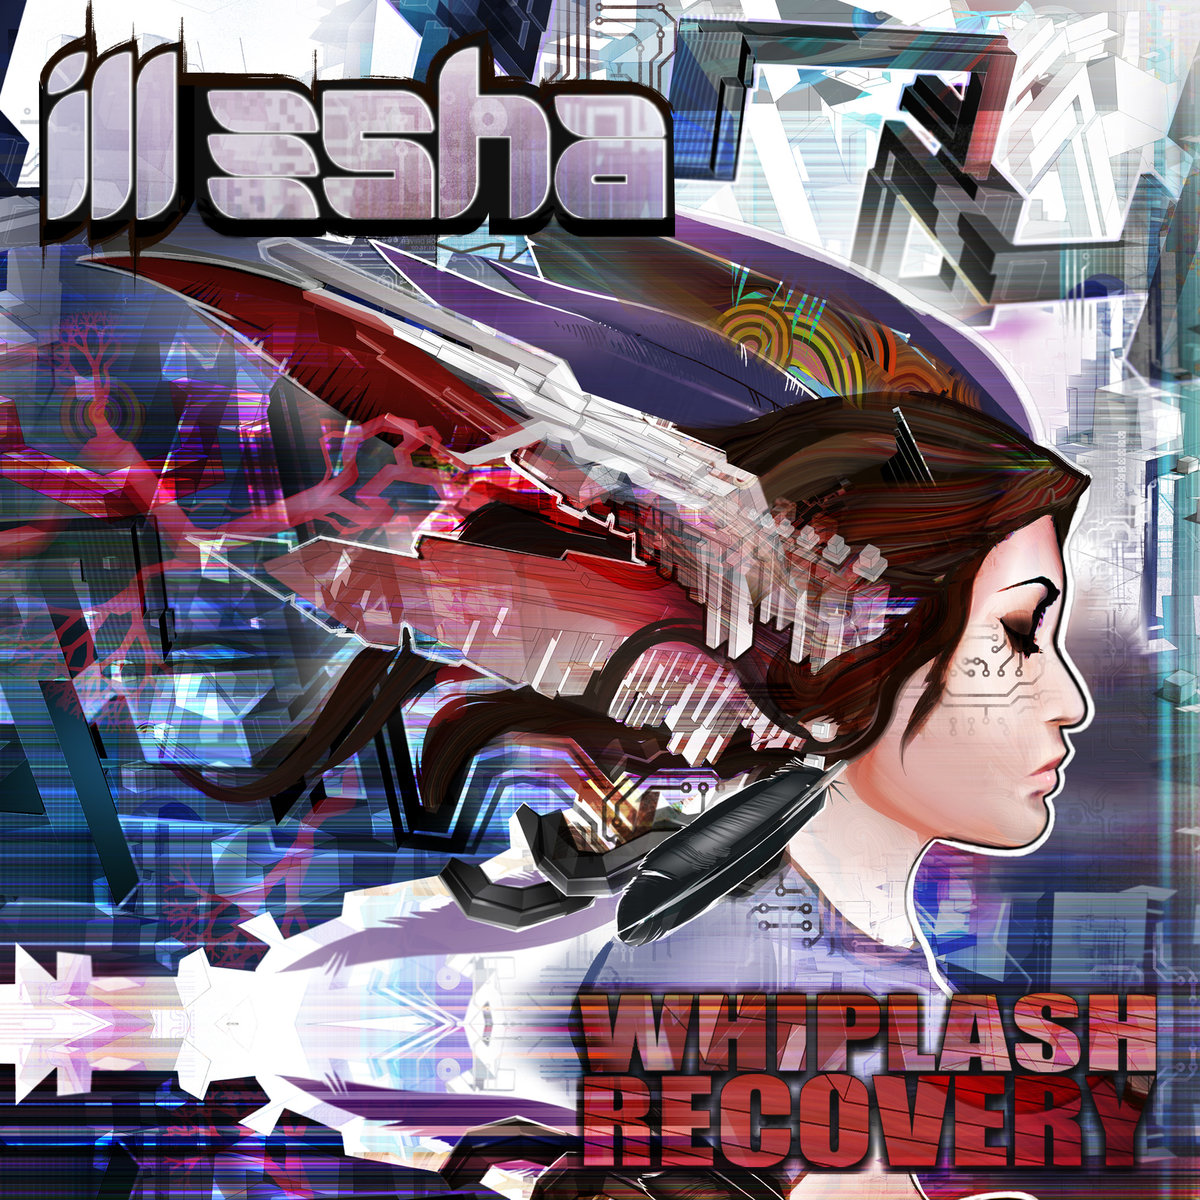 ill-esha - Whiplash Recovery (The Digital Connection Remix) @ 'Whiplash Recovery' album (california, denver)